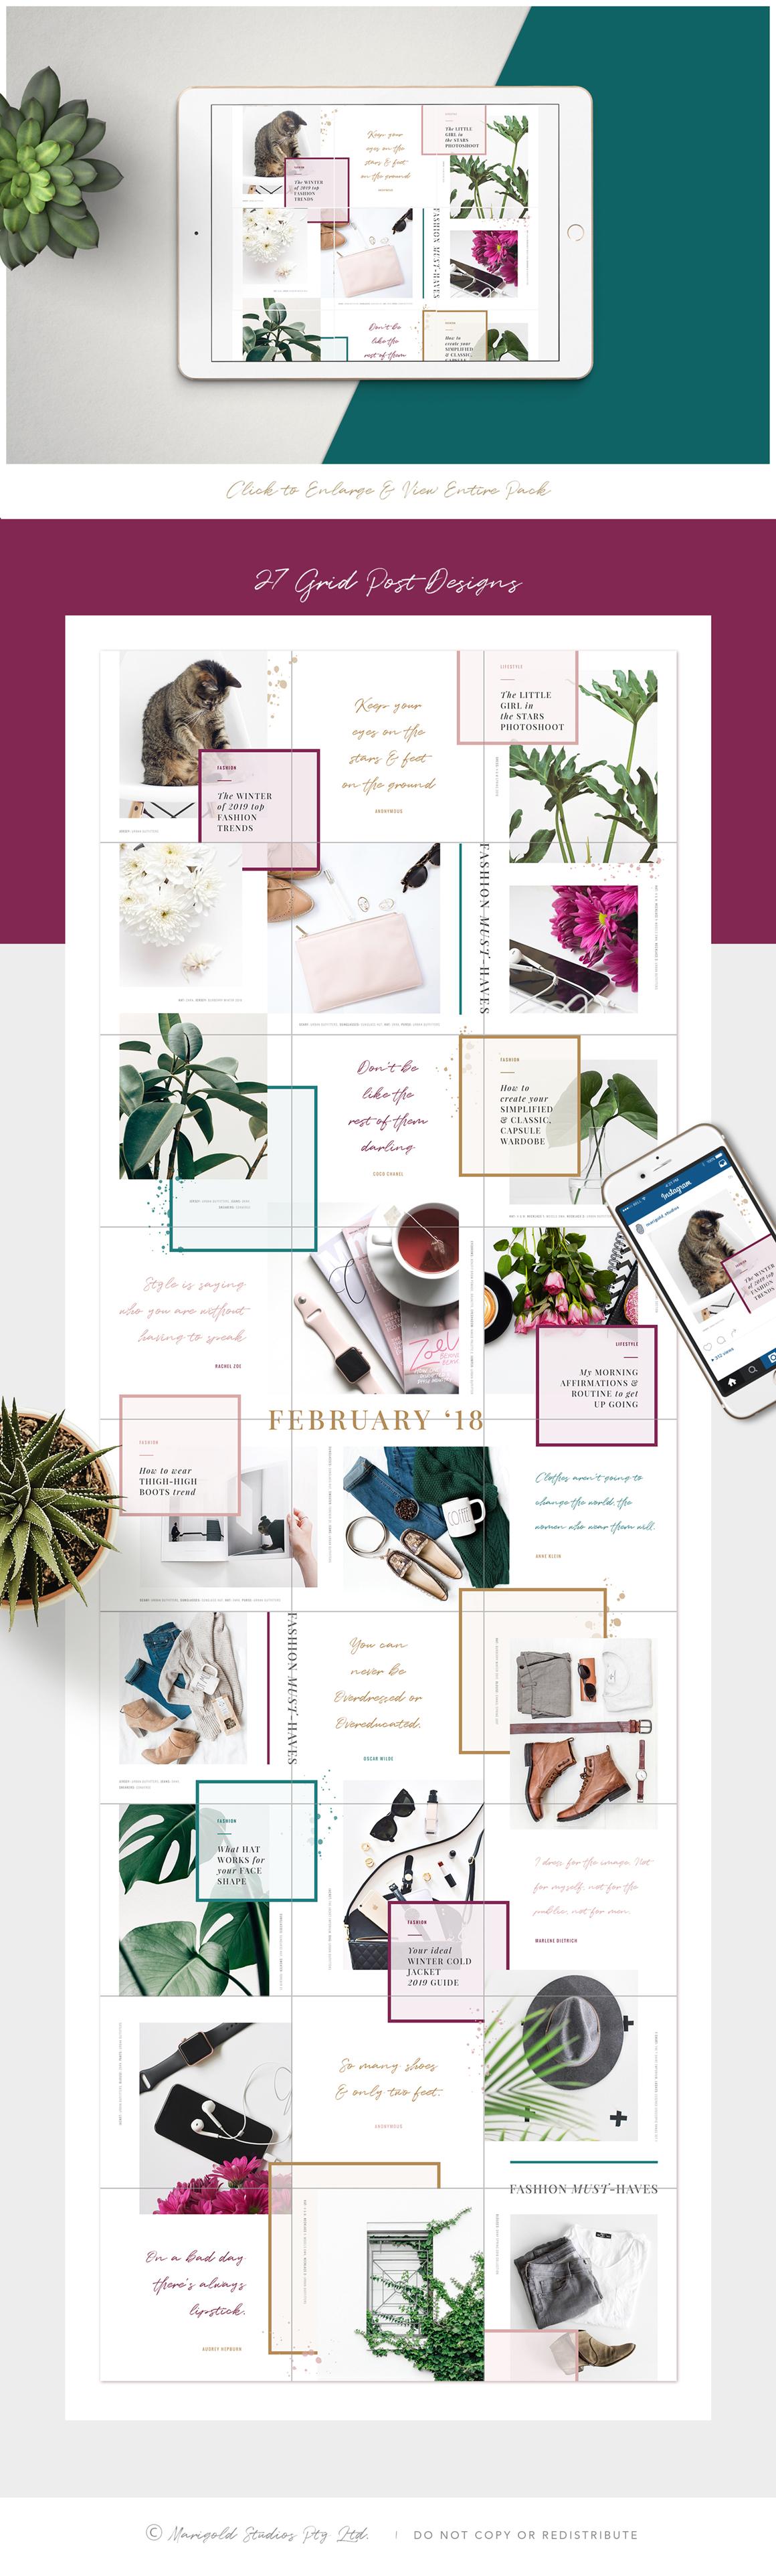 The Grid Instagram Layout Template